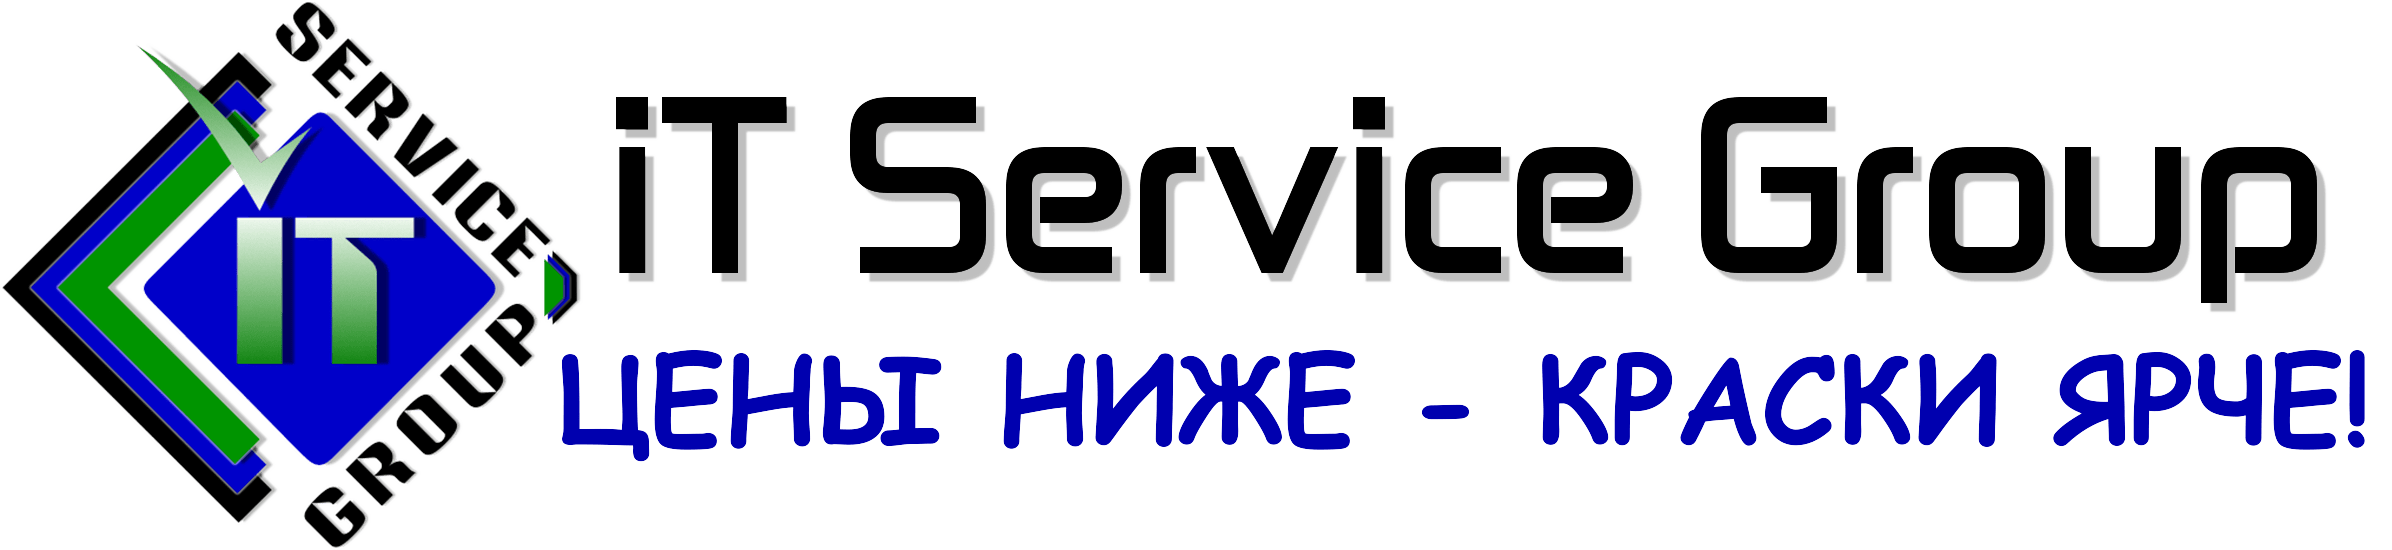 iT Service Group